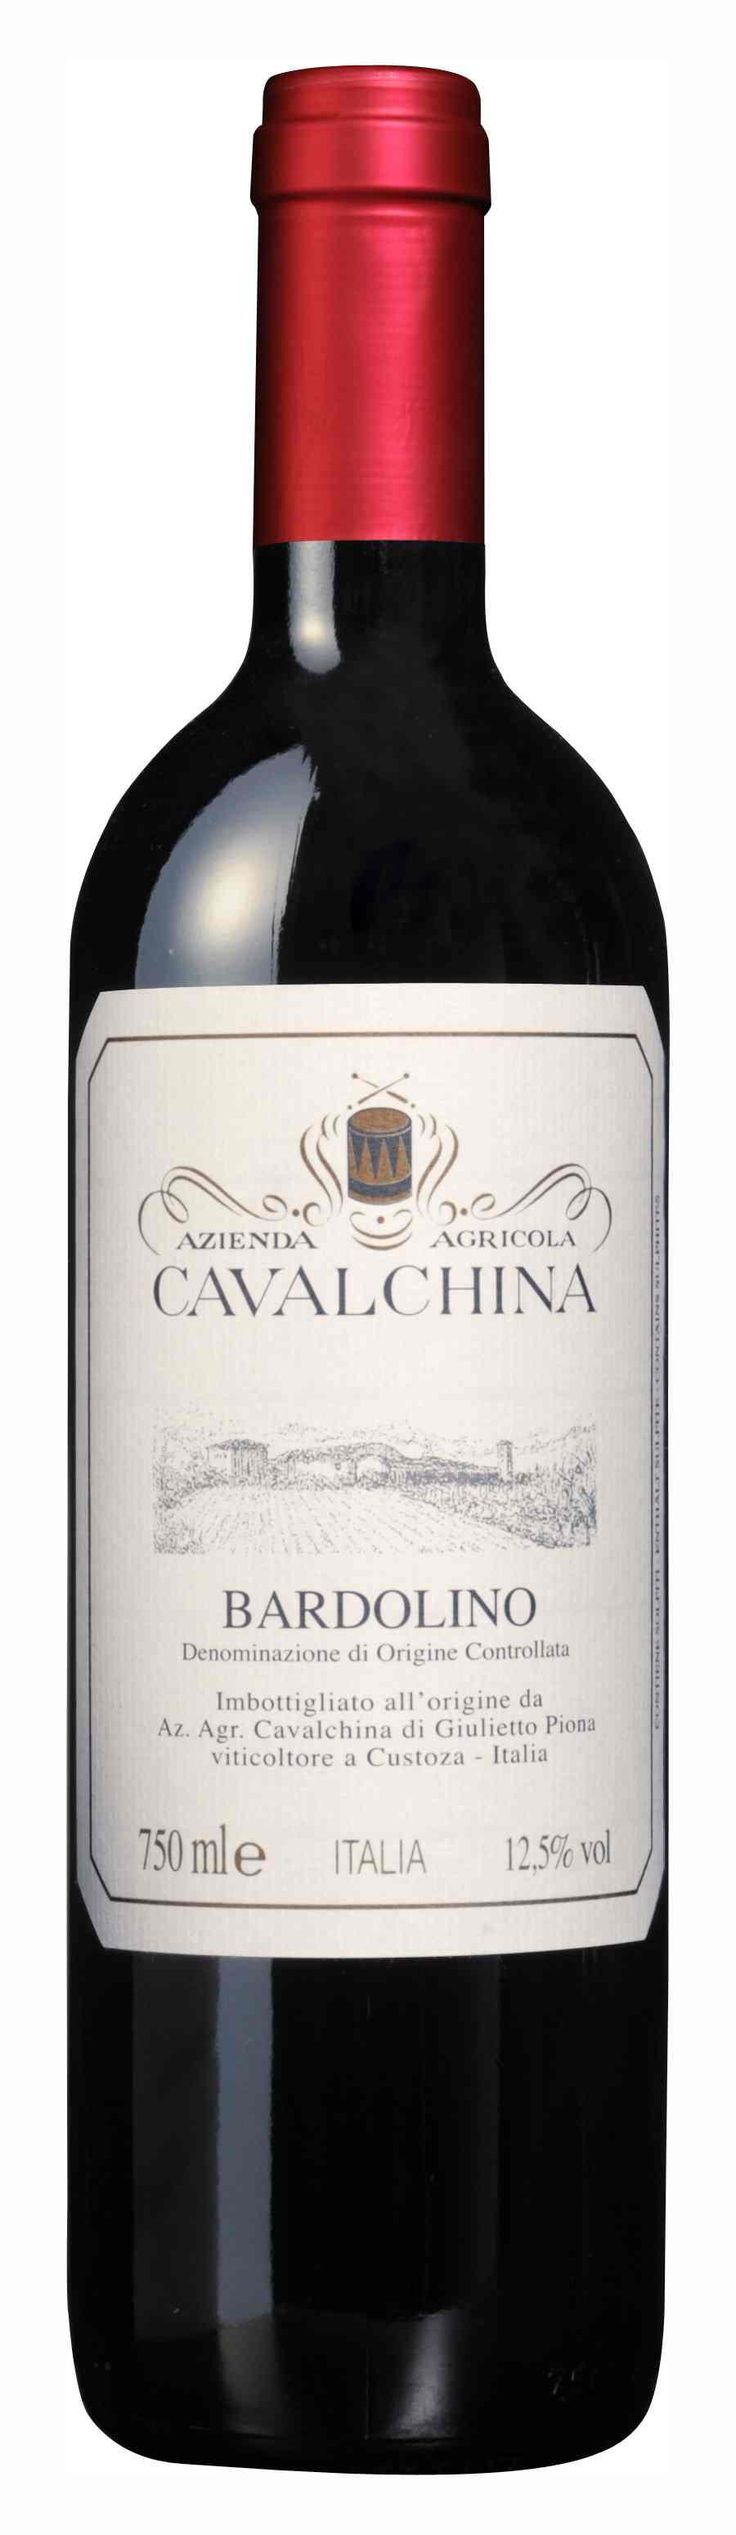 Cavalchina Bardolino...,again from our time in Verona in 2009. Visited here and had a lovely time